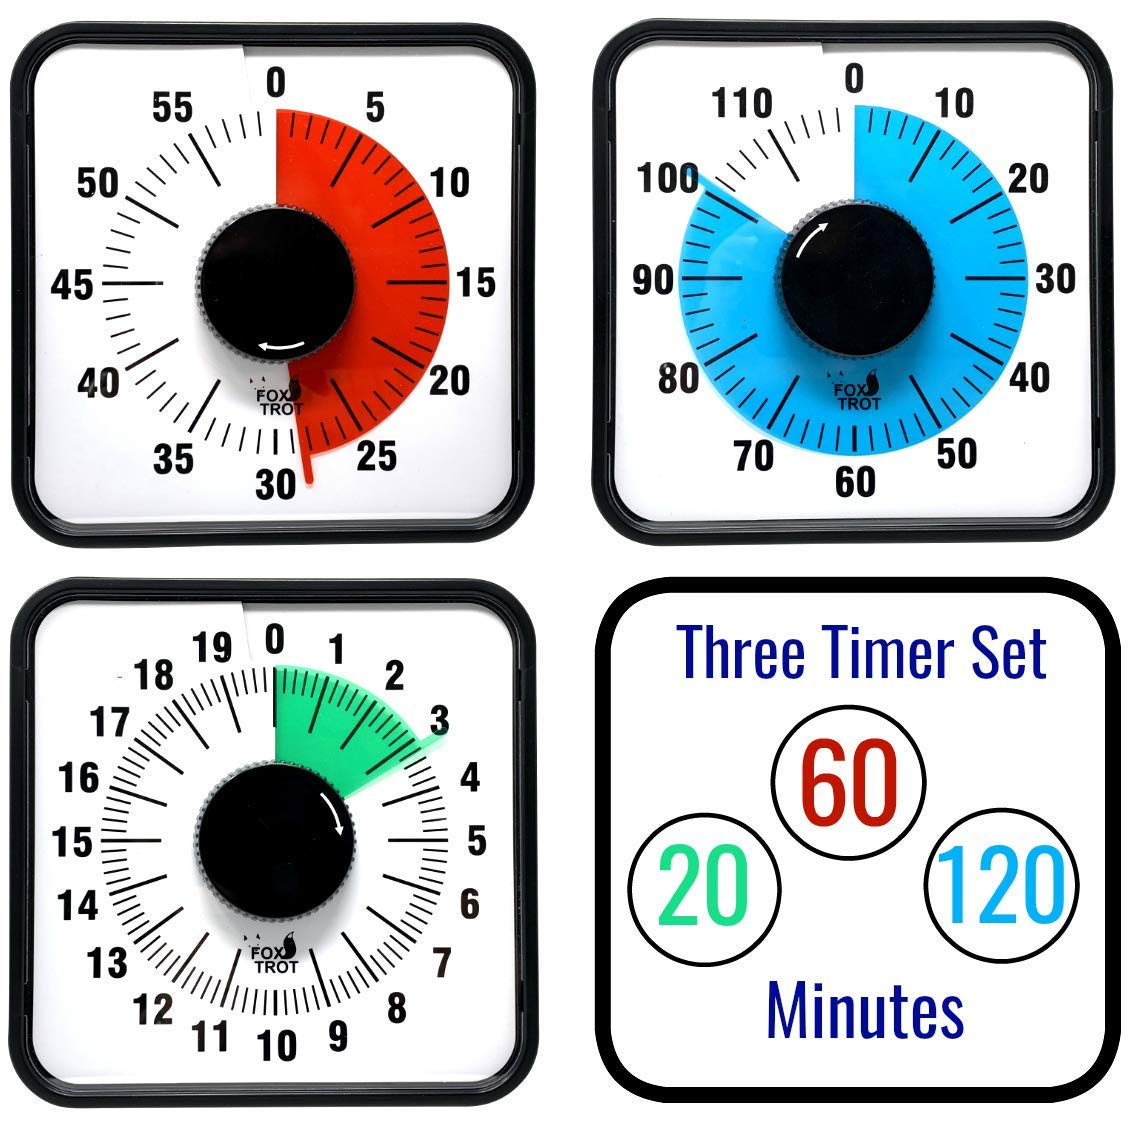 3 Pack of Visual Timer 20 Minute 60 Minute and 120 Minute Leg Stands or Hang On Walls Fox Trot Magnetic Back